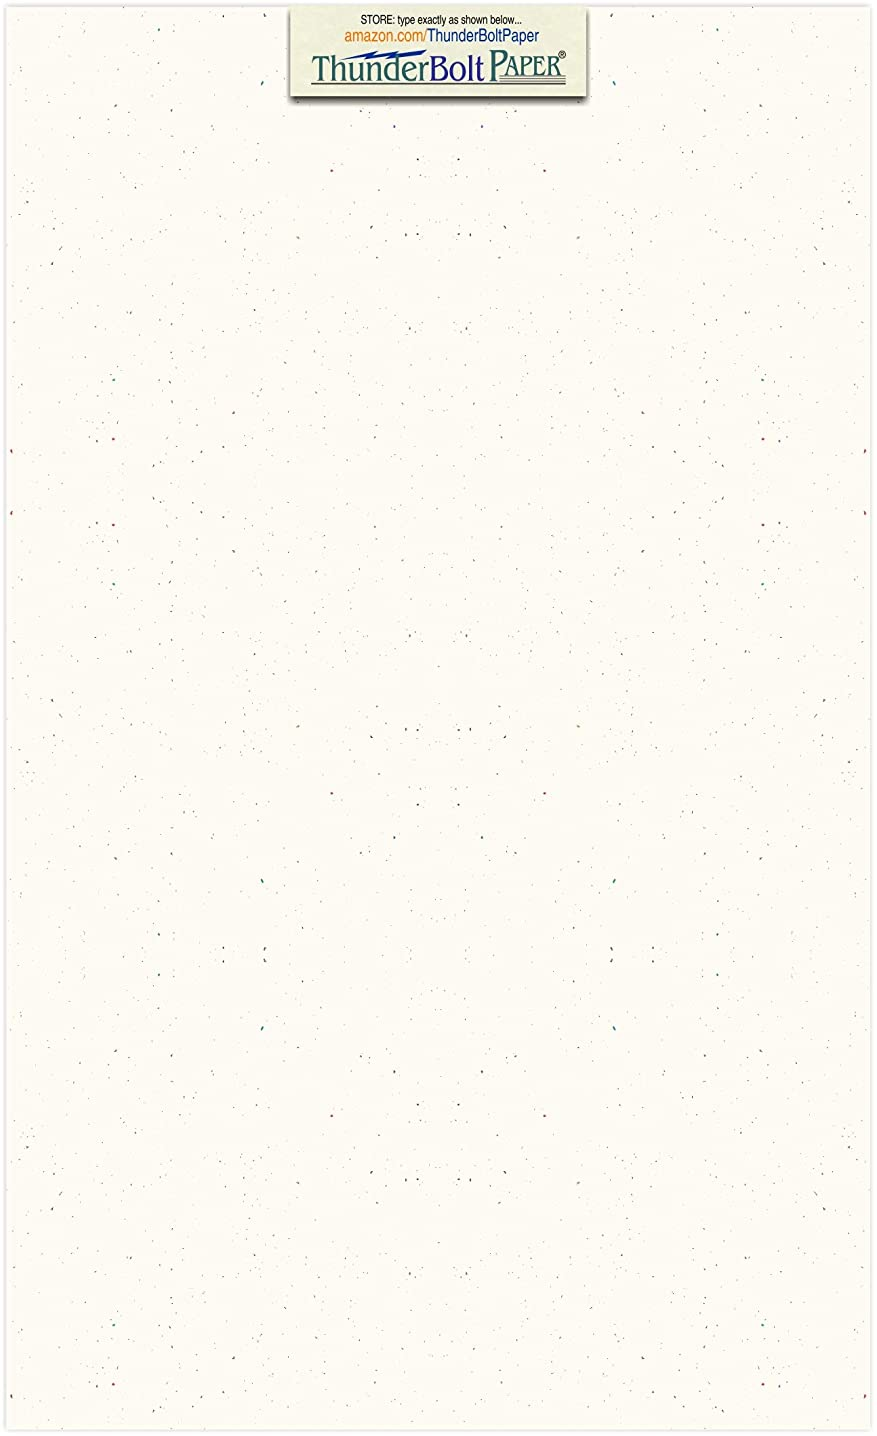 100 Confetti White 65lb Cover Card Paper - 8.5 X 14 Inches Legal & Menu Size - 65 lb/Pound Light Weight Cardstock - Quality Printable Smooth Surface for Bright Colorful Results